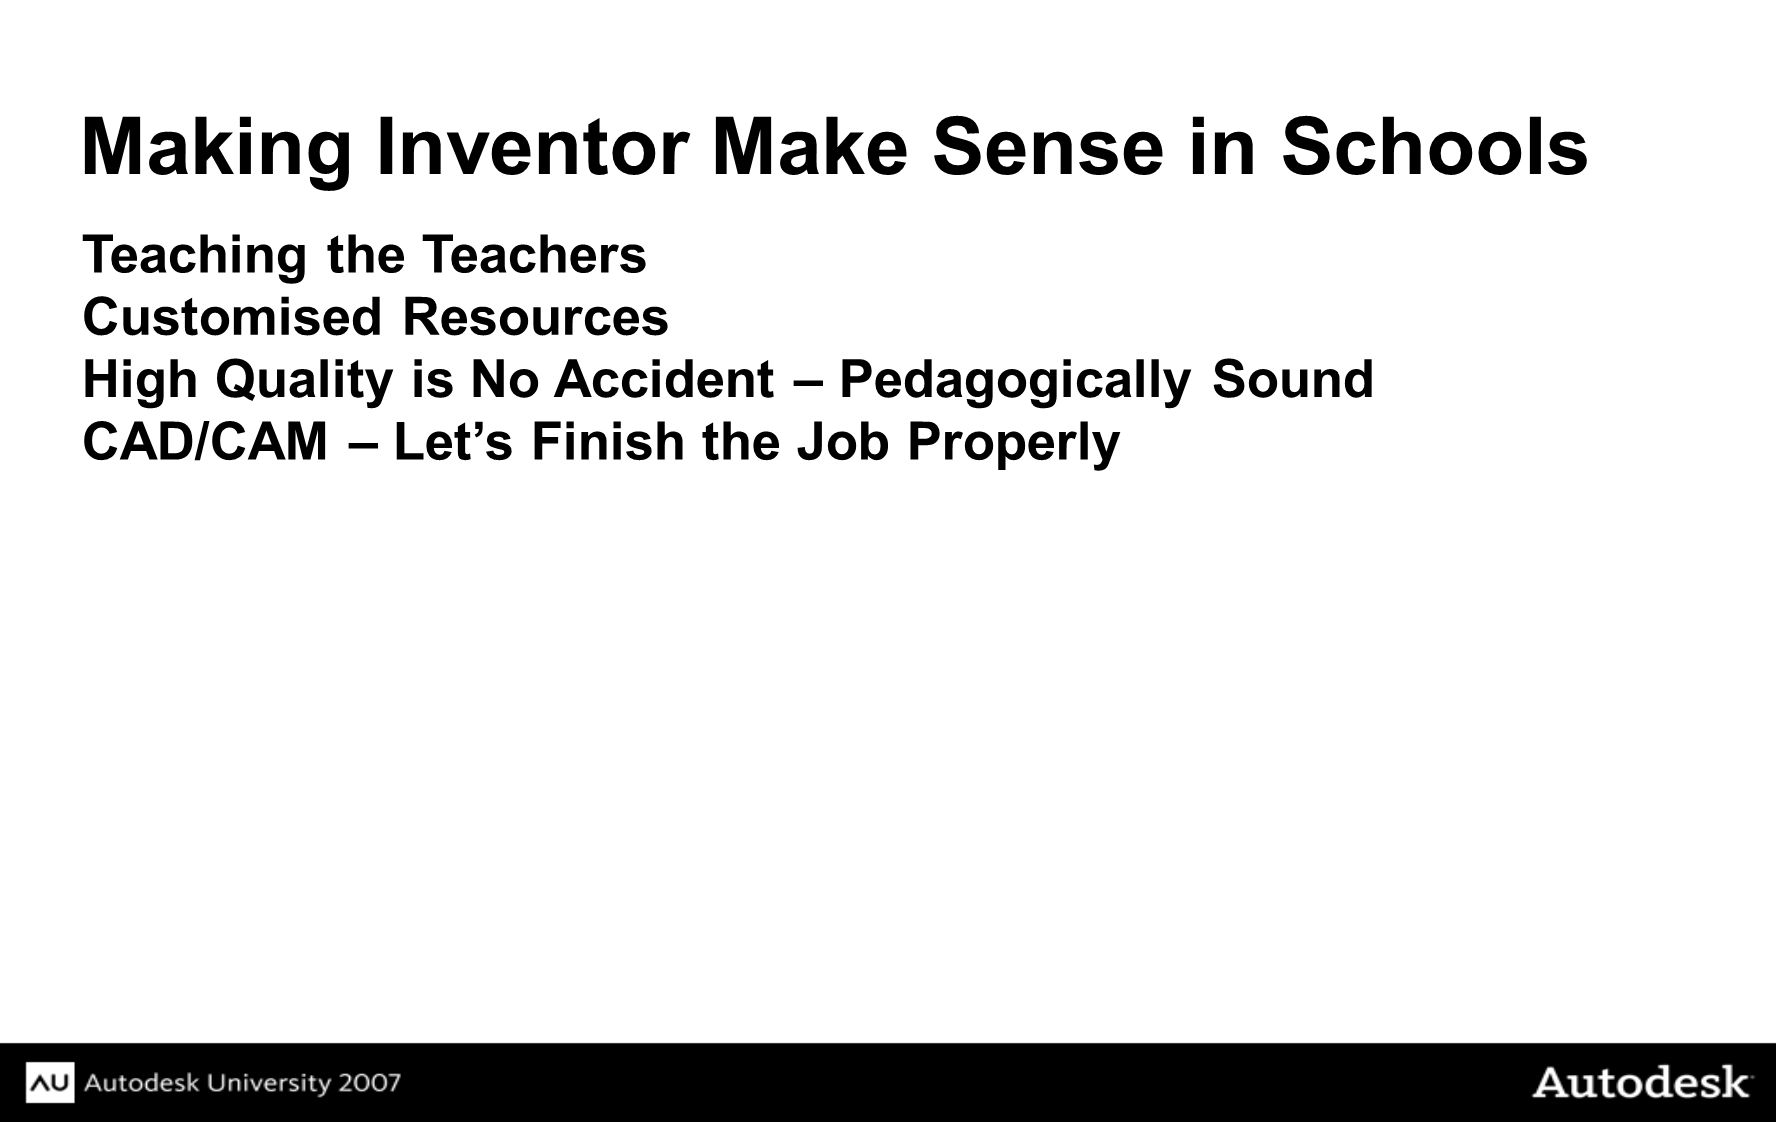 Teaching the Teachers Resource Created for the Student Engineering & Design Community Version 1 – Flash video, aimed at teachers Version 2 – Interactive Ppt., aimed at pupils All with the same vision… …Imagination as a source of inspiration Version 3 – Interactive eBook, aimed at pupils